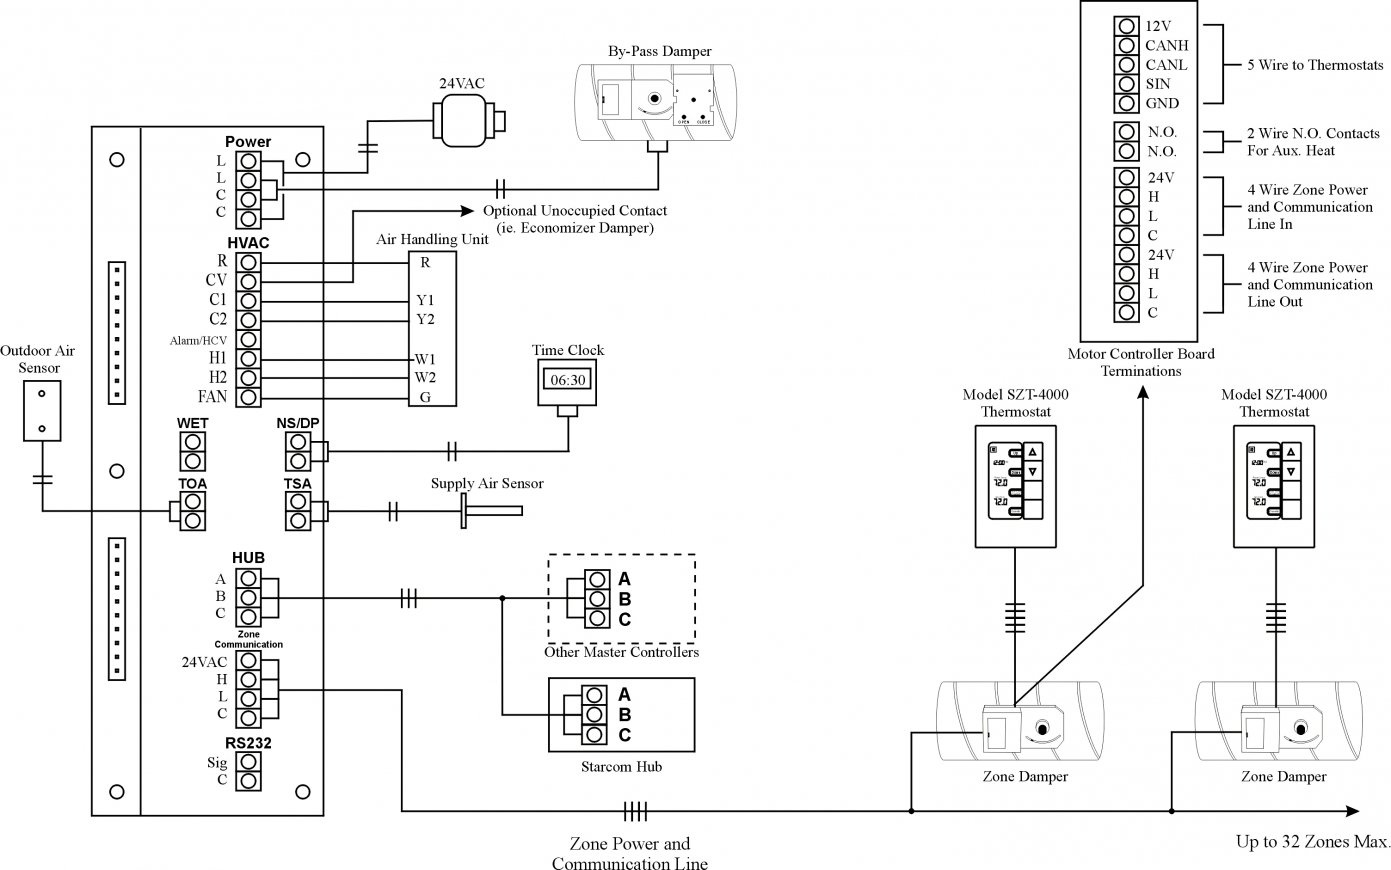 Fire Detector Wiring Diagram | Wiring Diagram - 4 Wire Smoke Detector Wiring Diagram